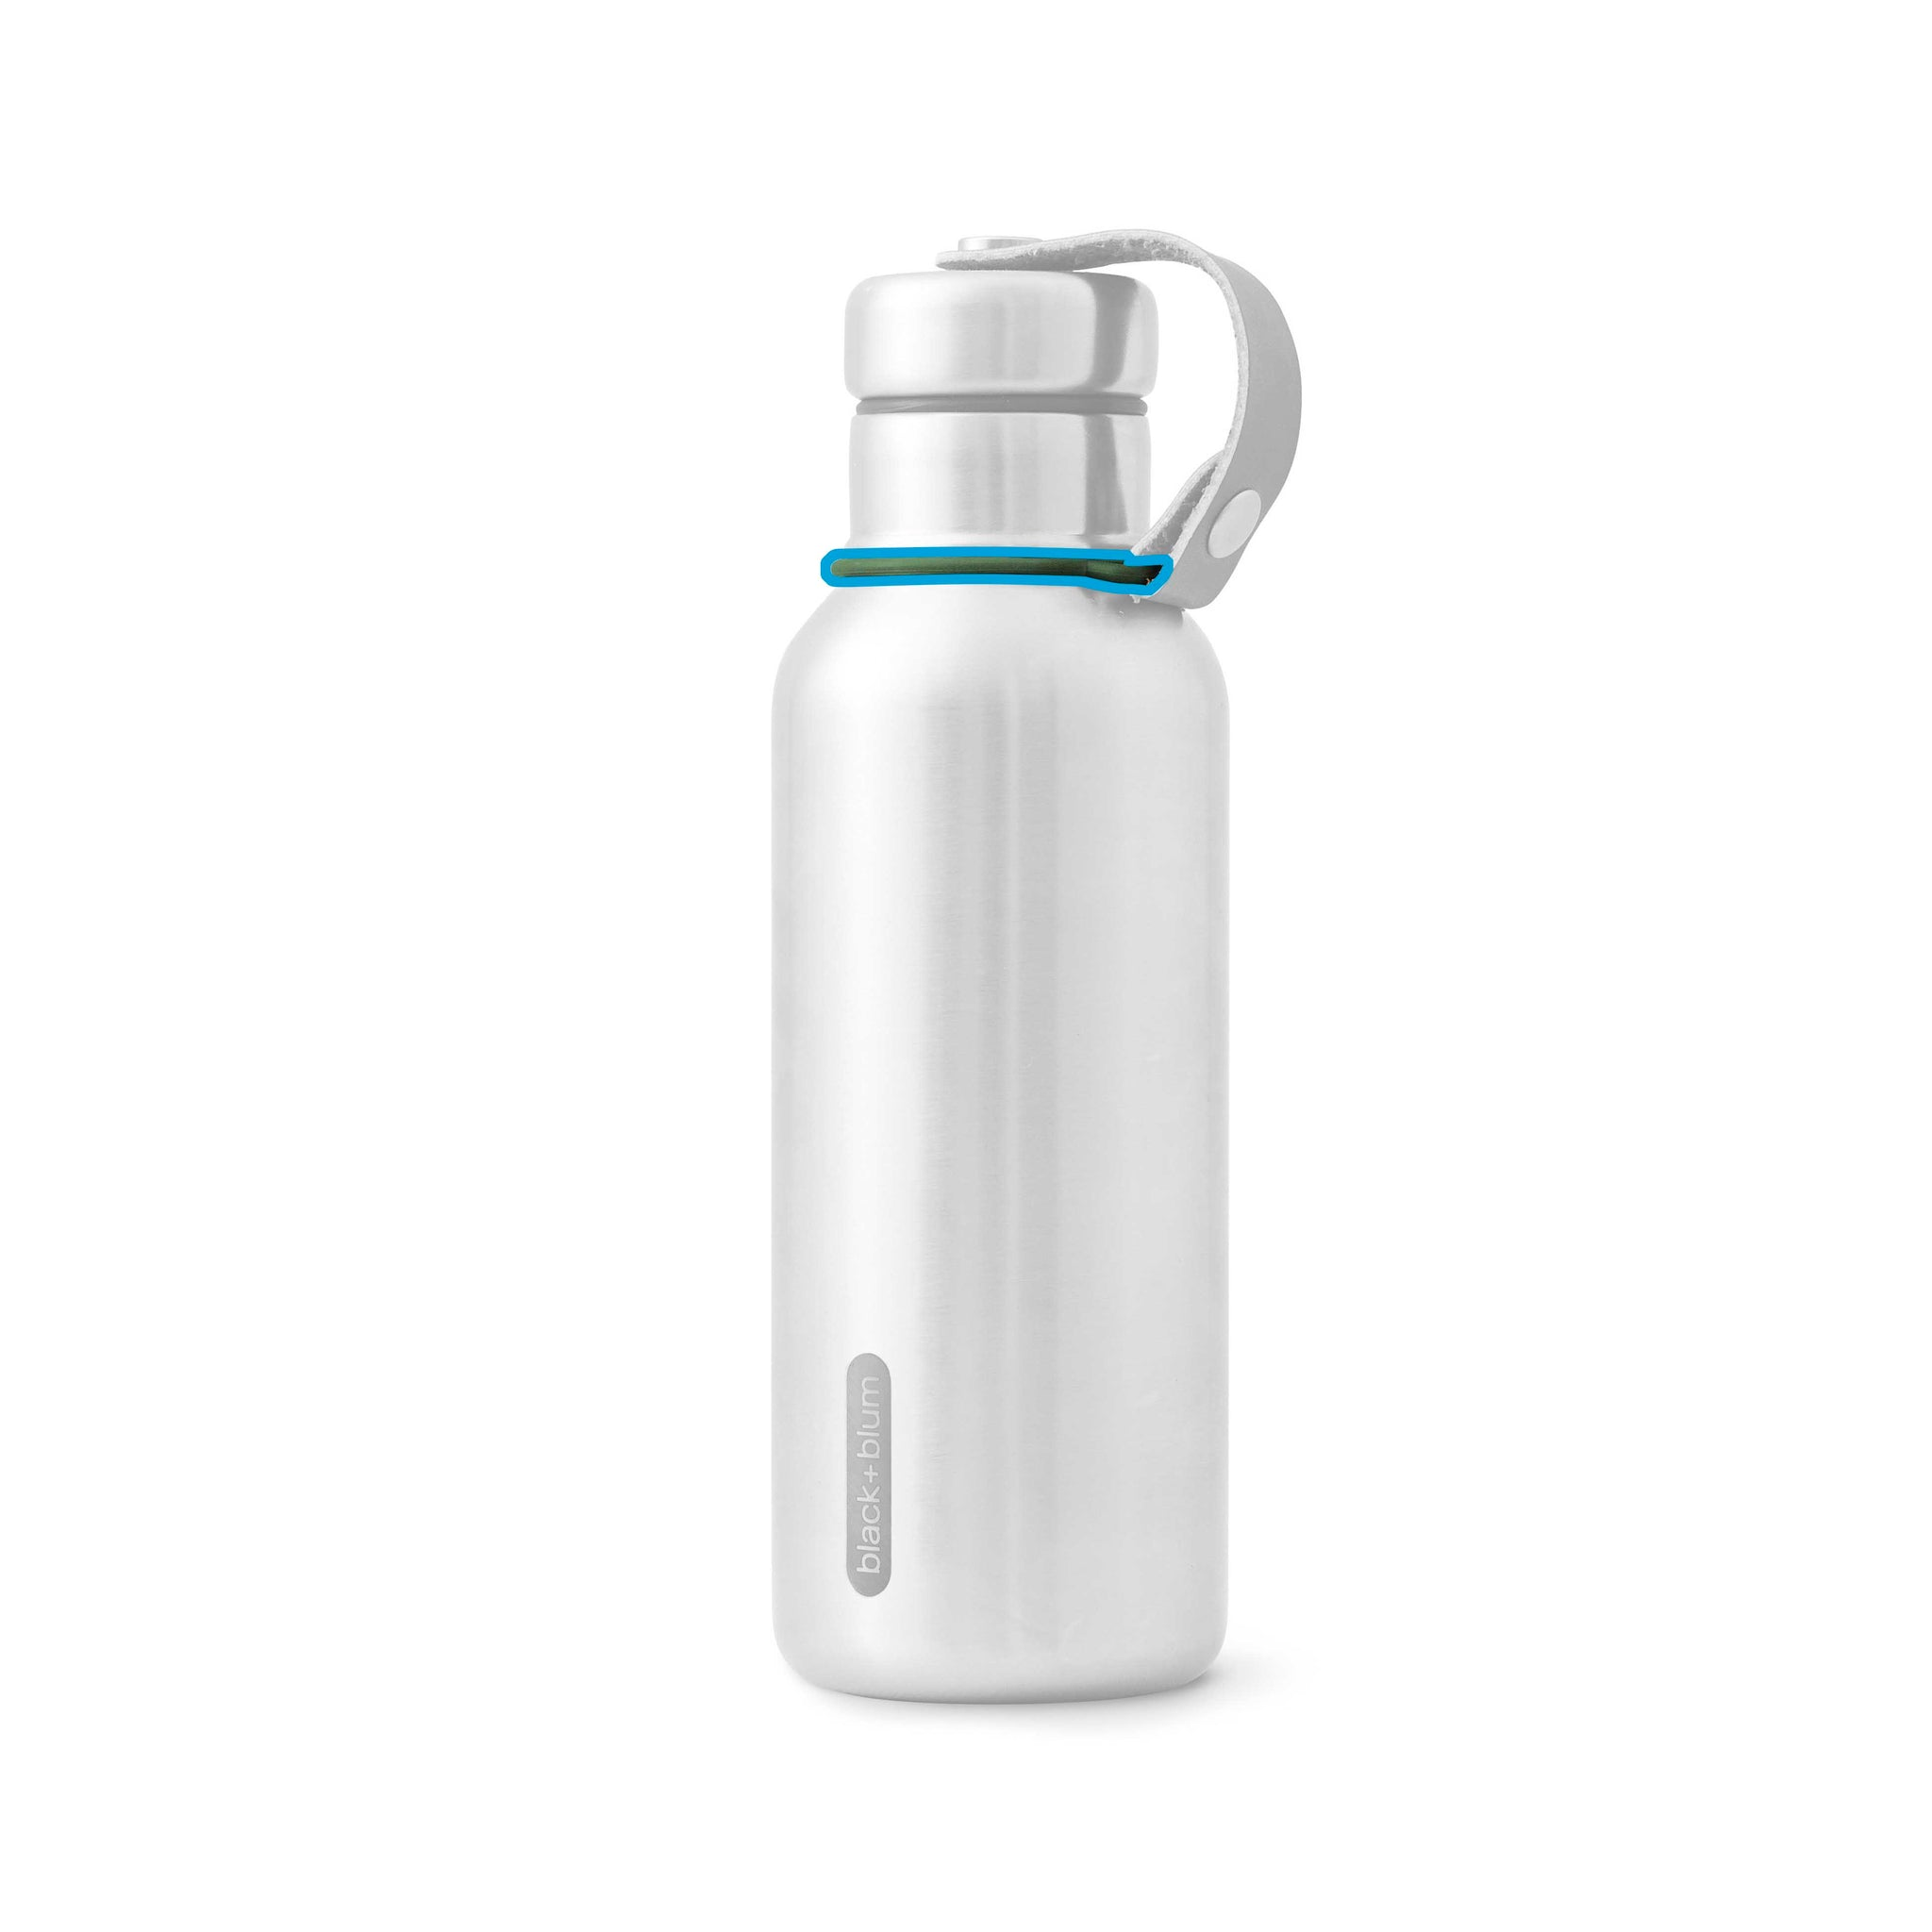 Replacement INSULATED WATER BOTTLE RING